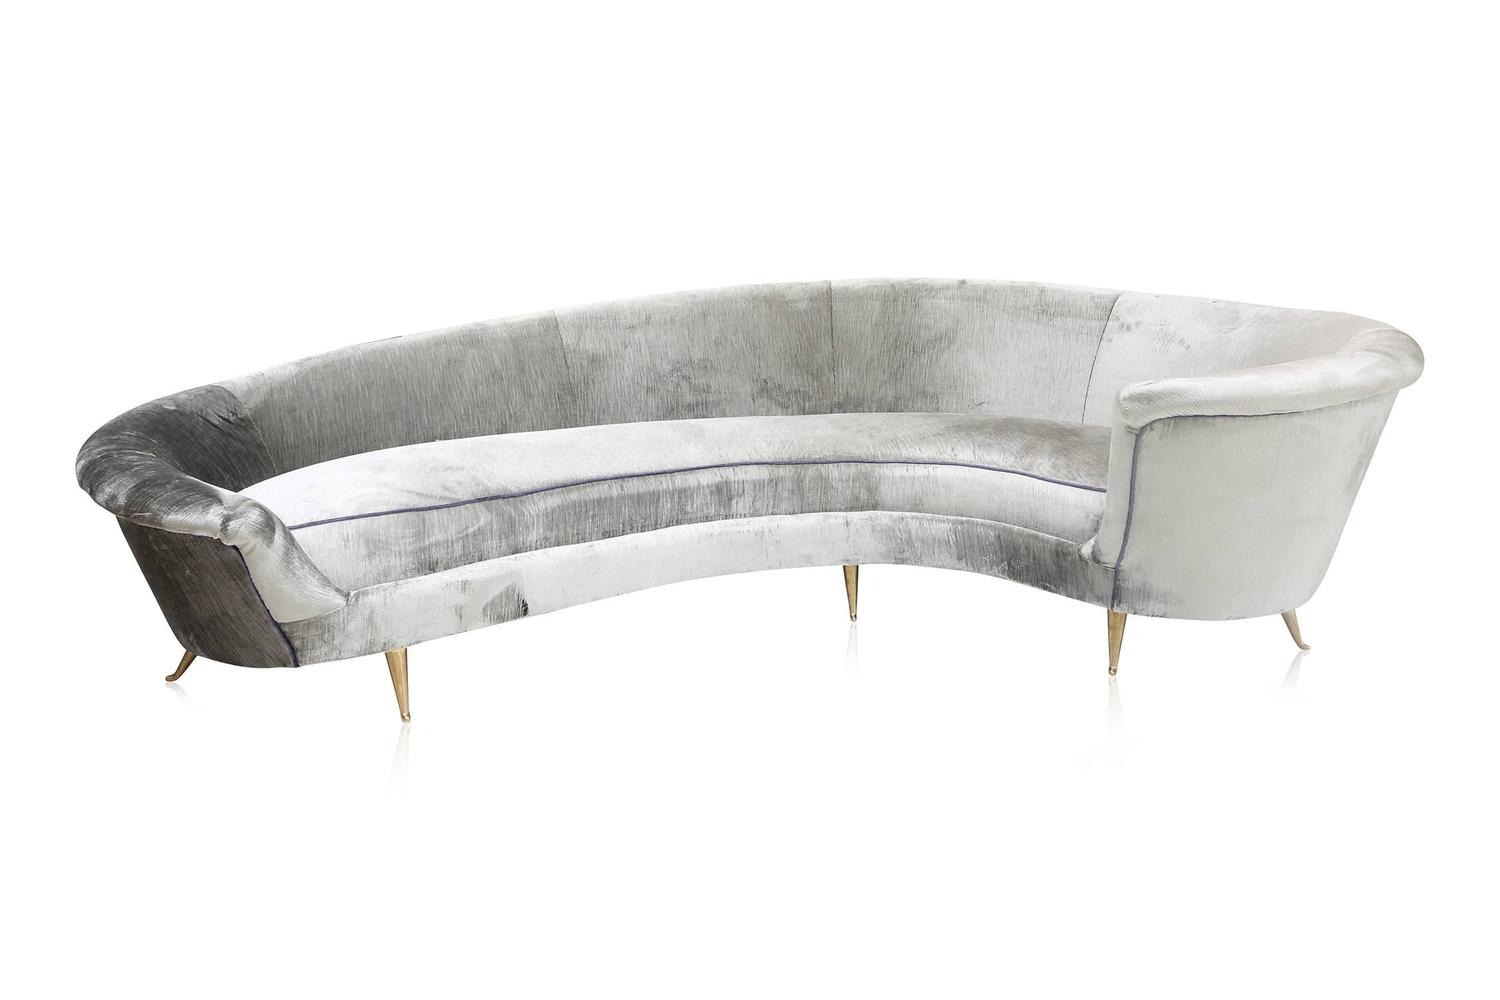 Curved high end sofa for sale at 1stdibs for High end sofas for sale